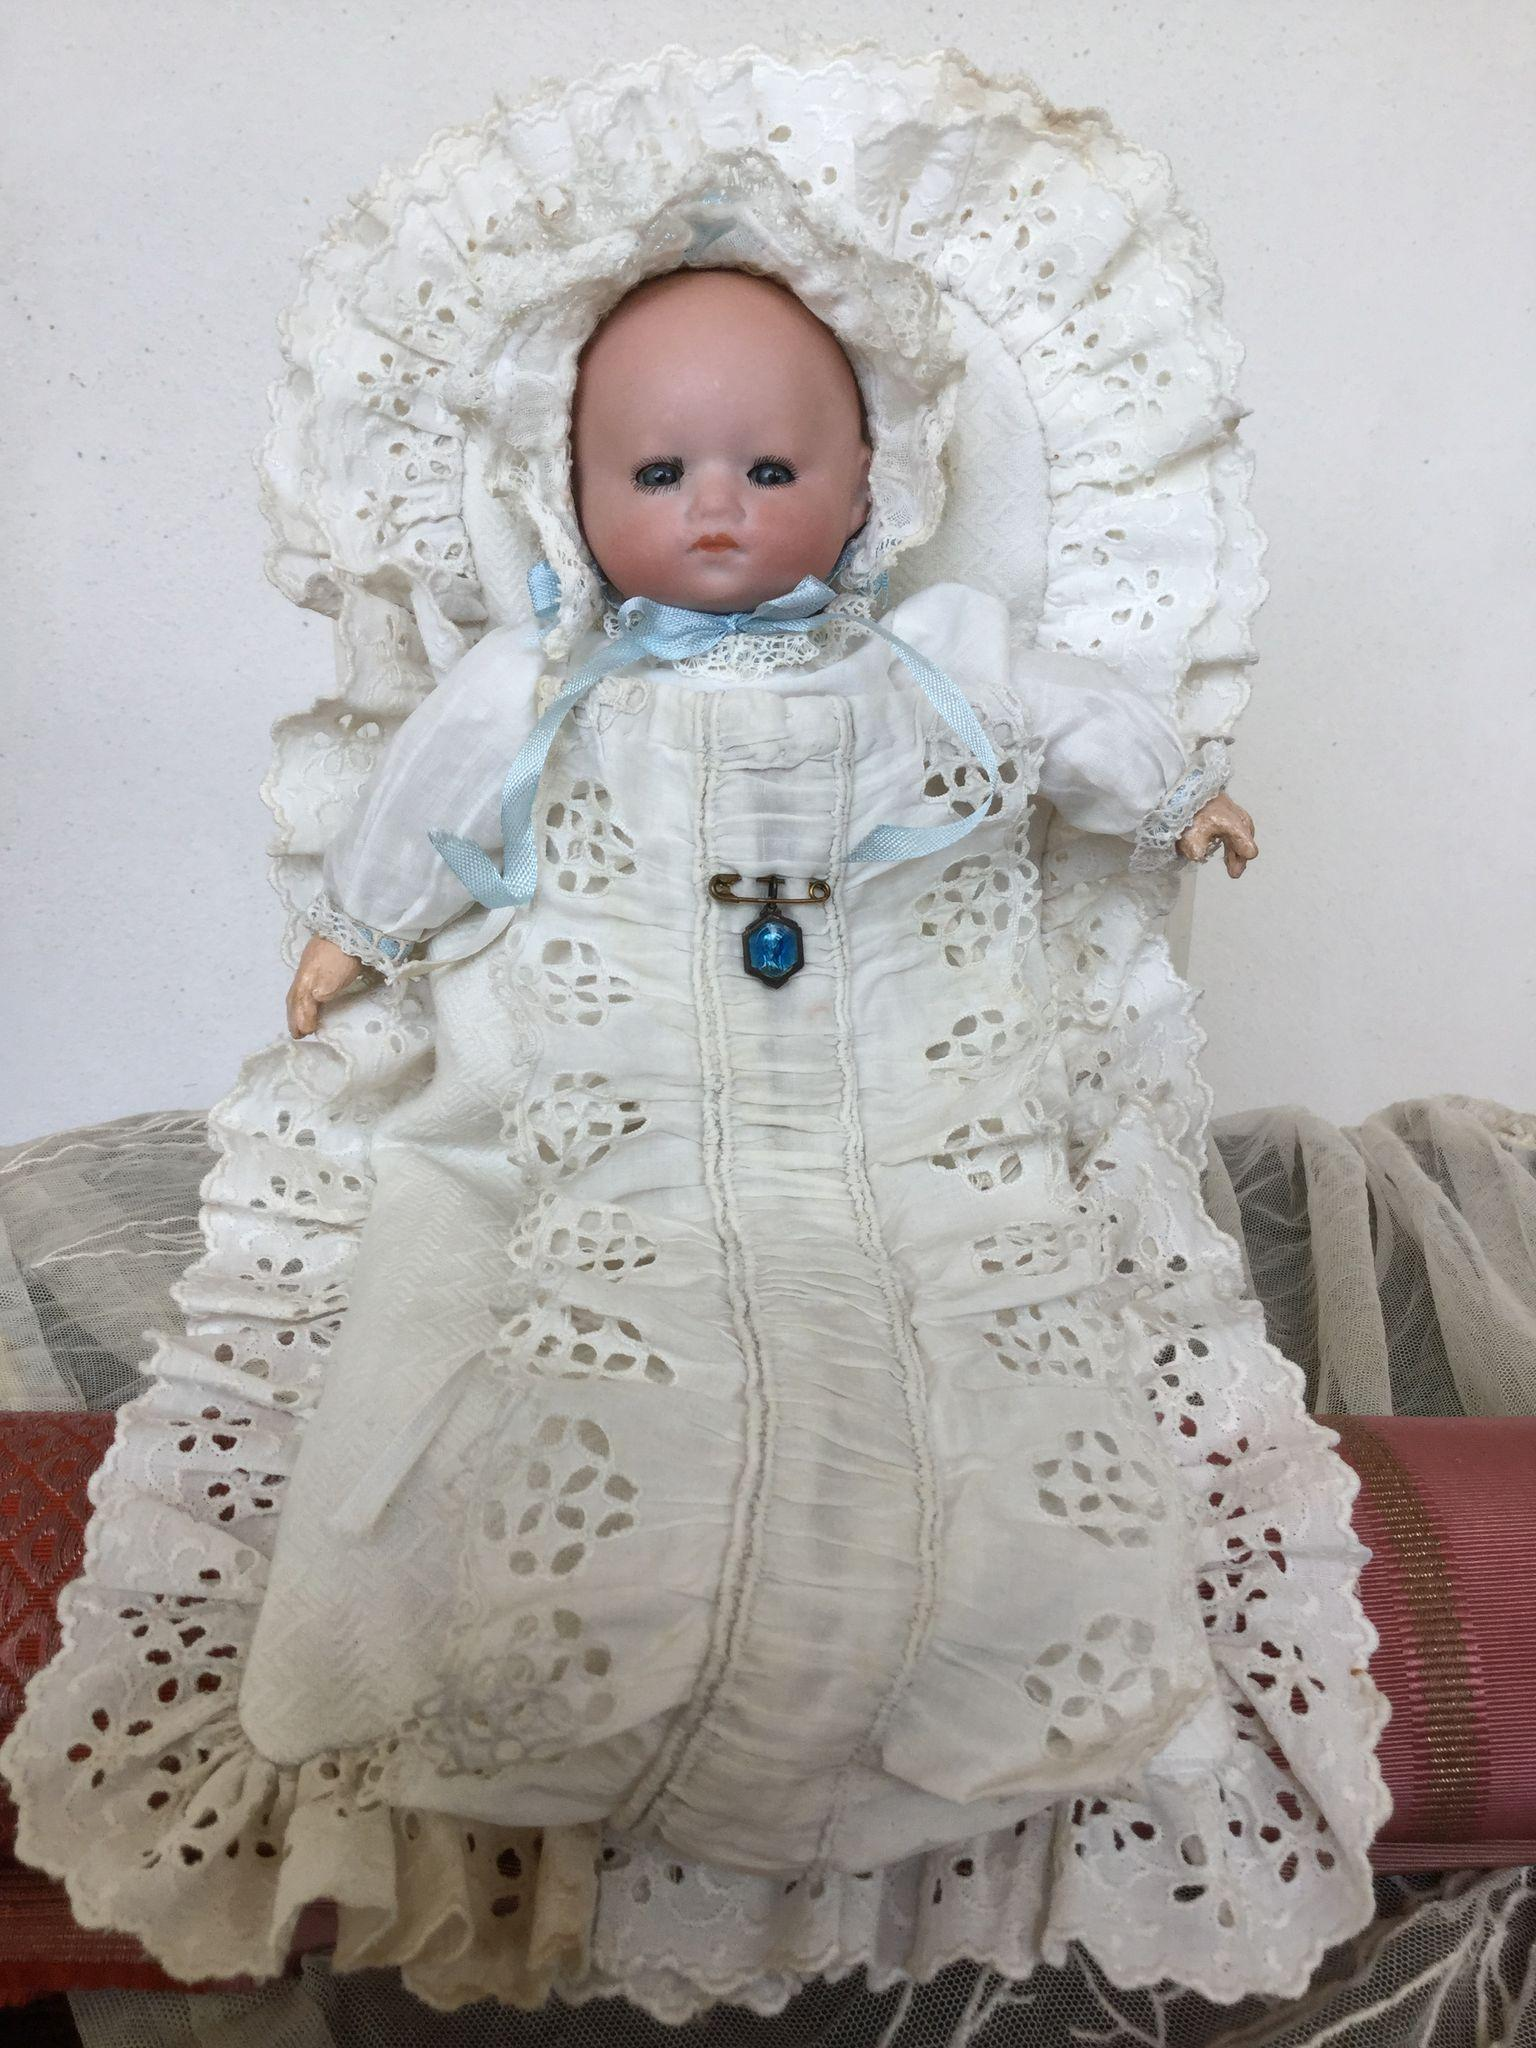 Fantastic Bisque Tiny Baby Doll All Original Condition